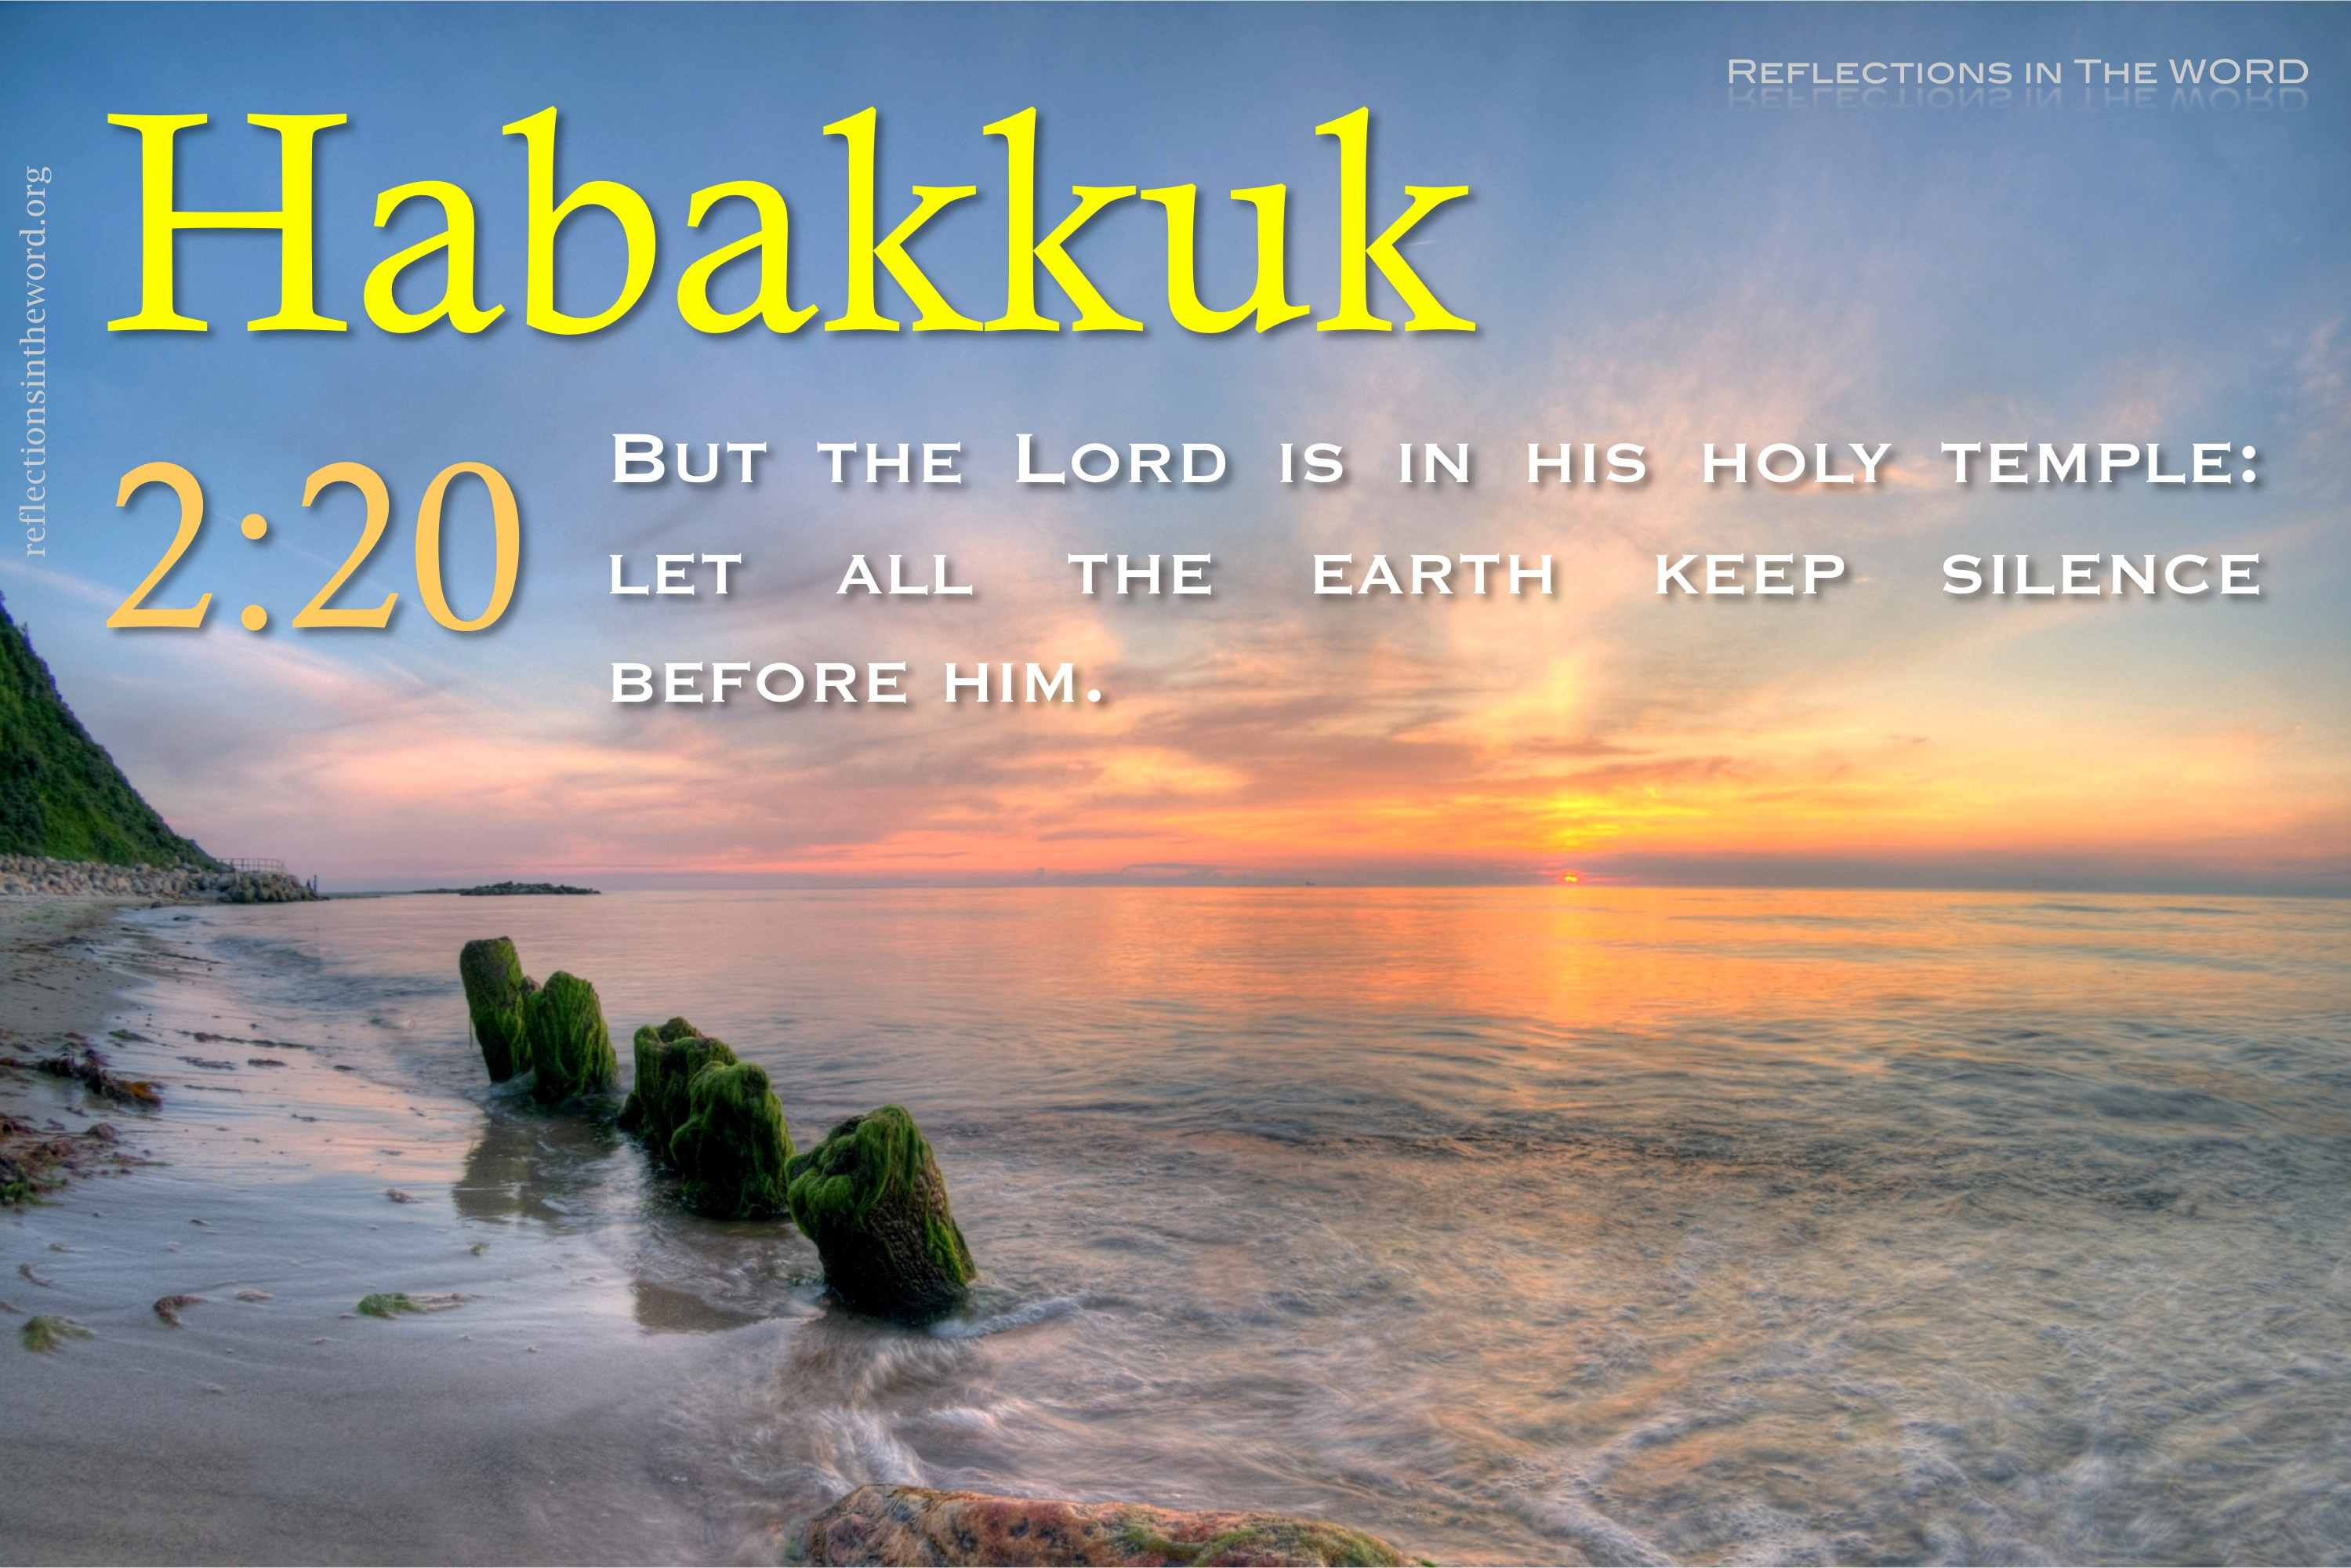 Habakkuk 2 20 Reflections In The Word